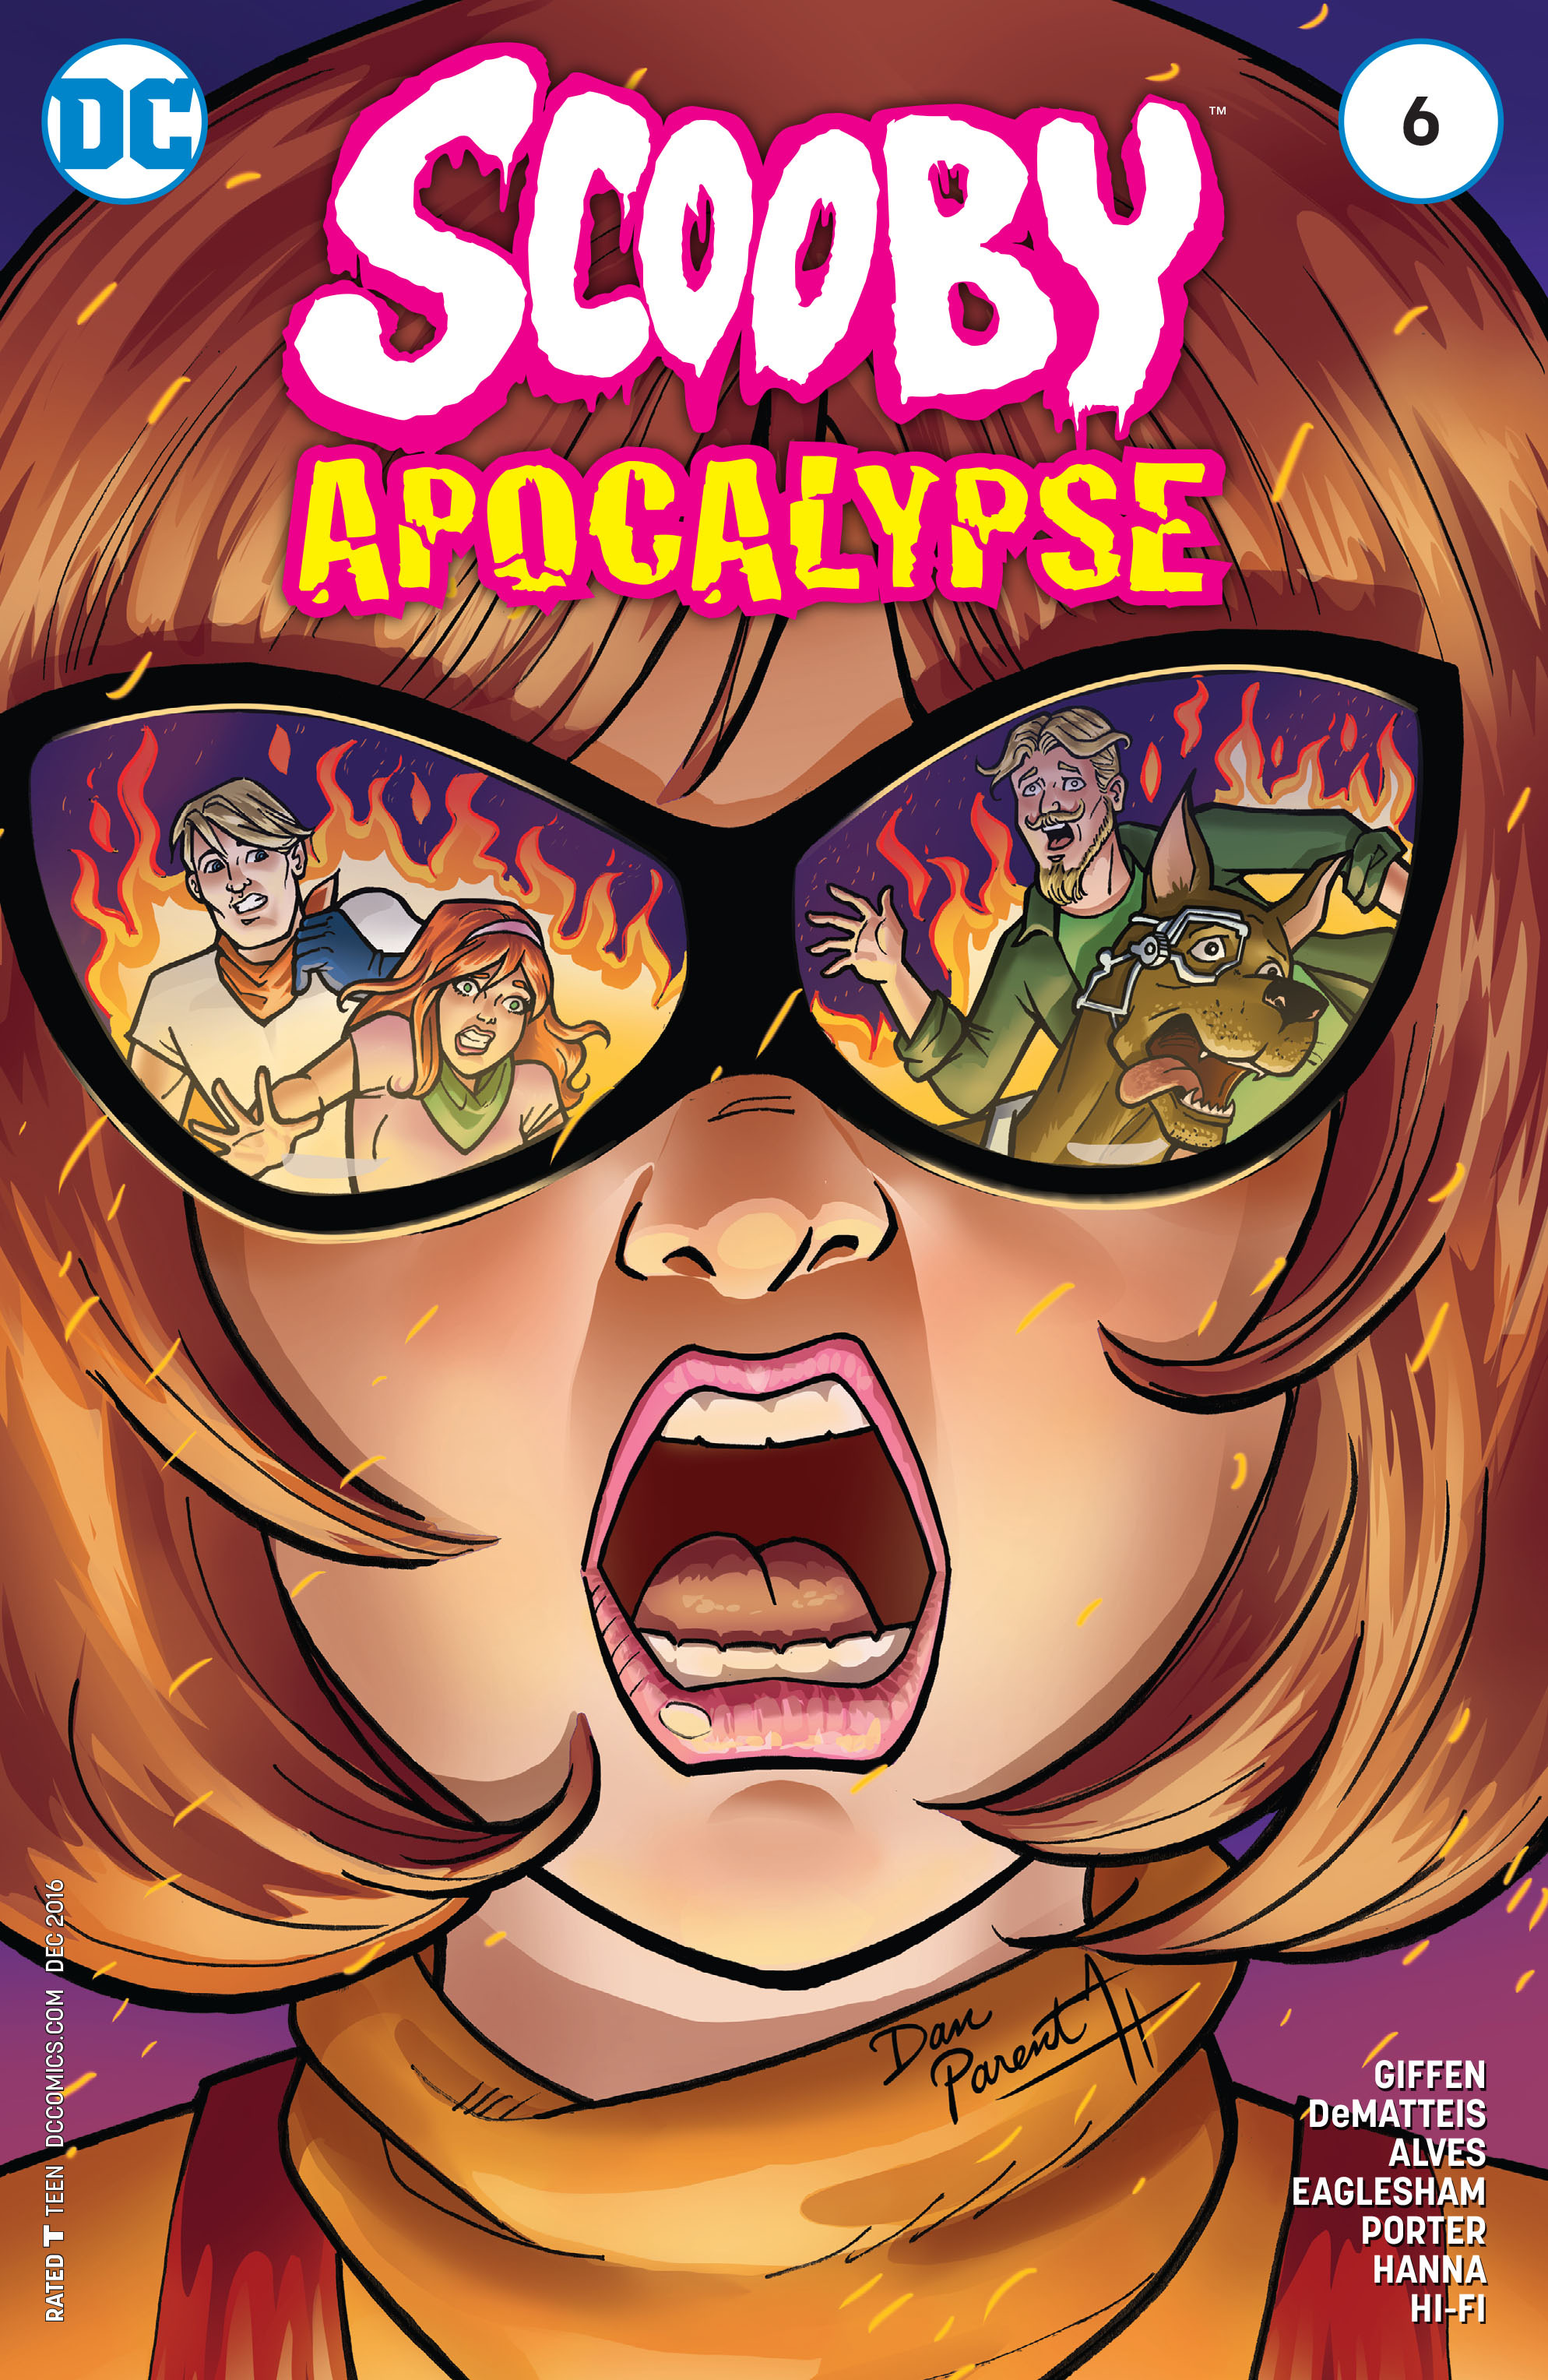 Read online Scooby Apocalypse comic -  Issue #6 - 3